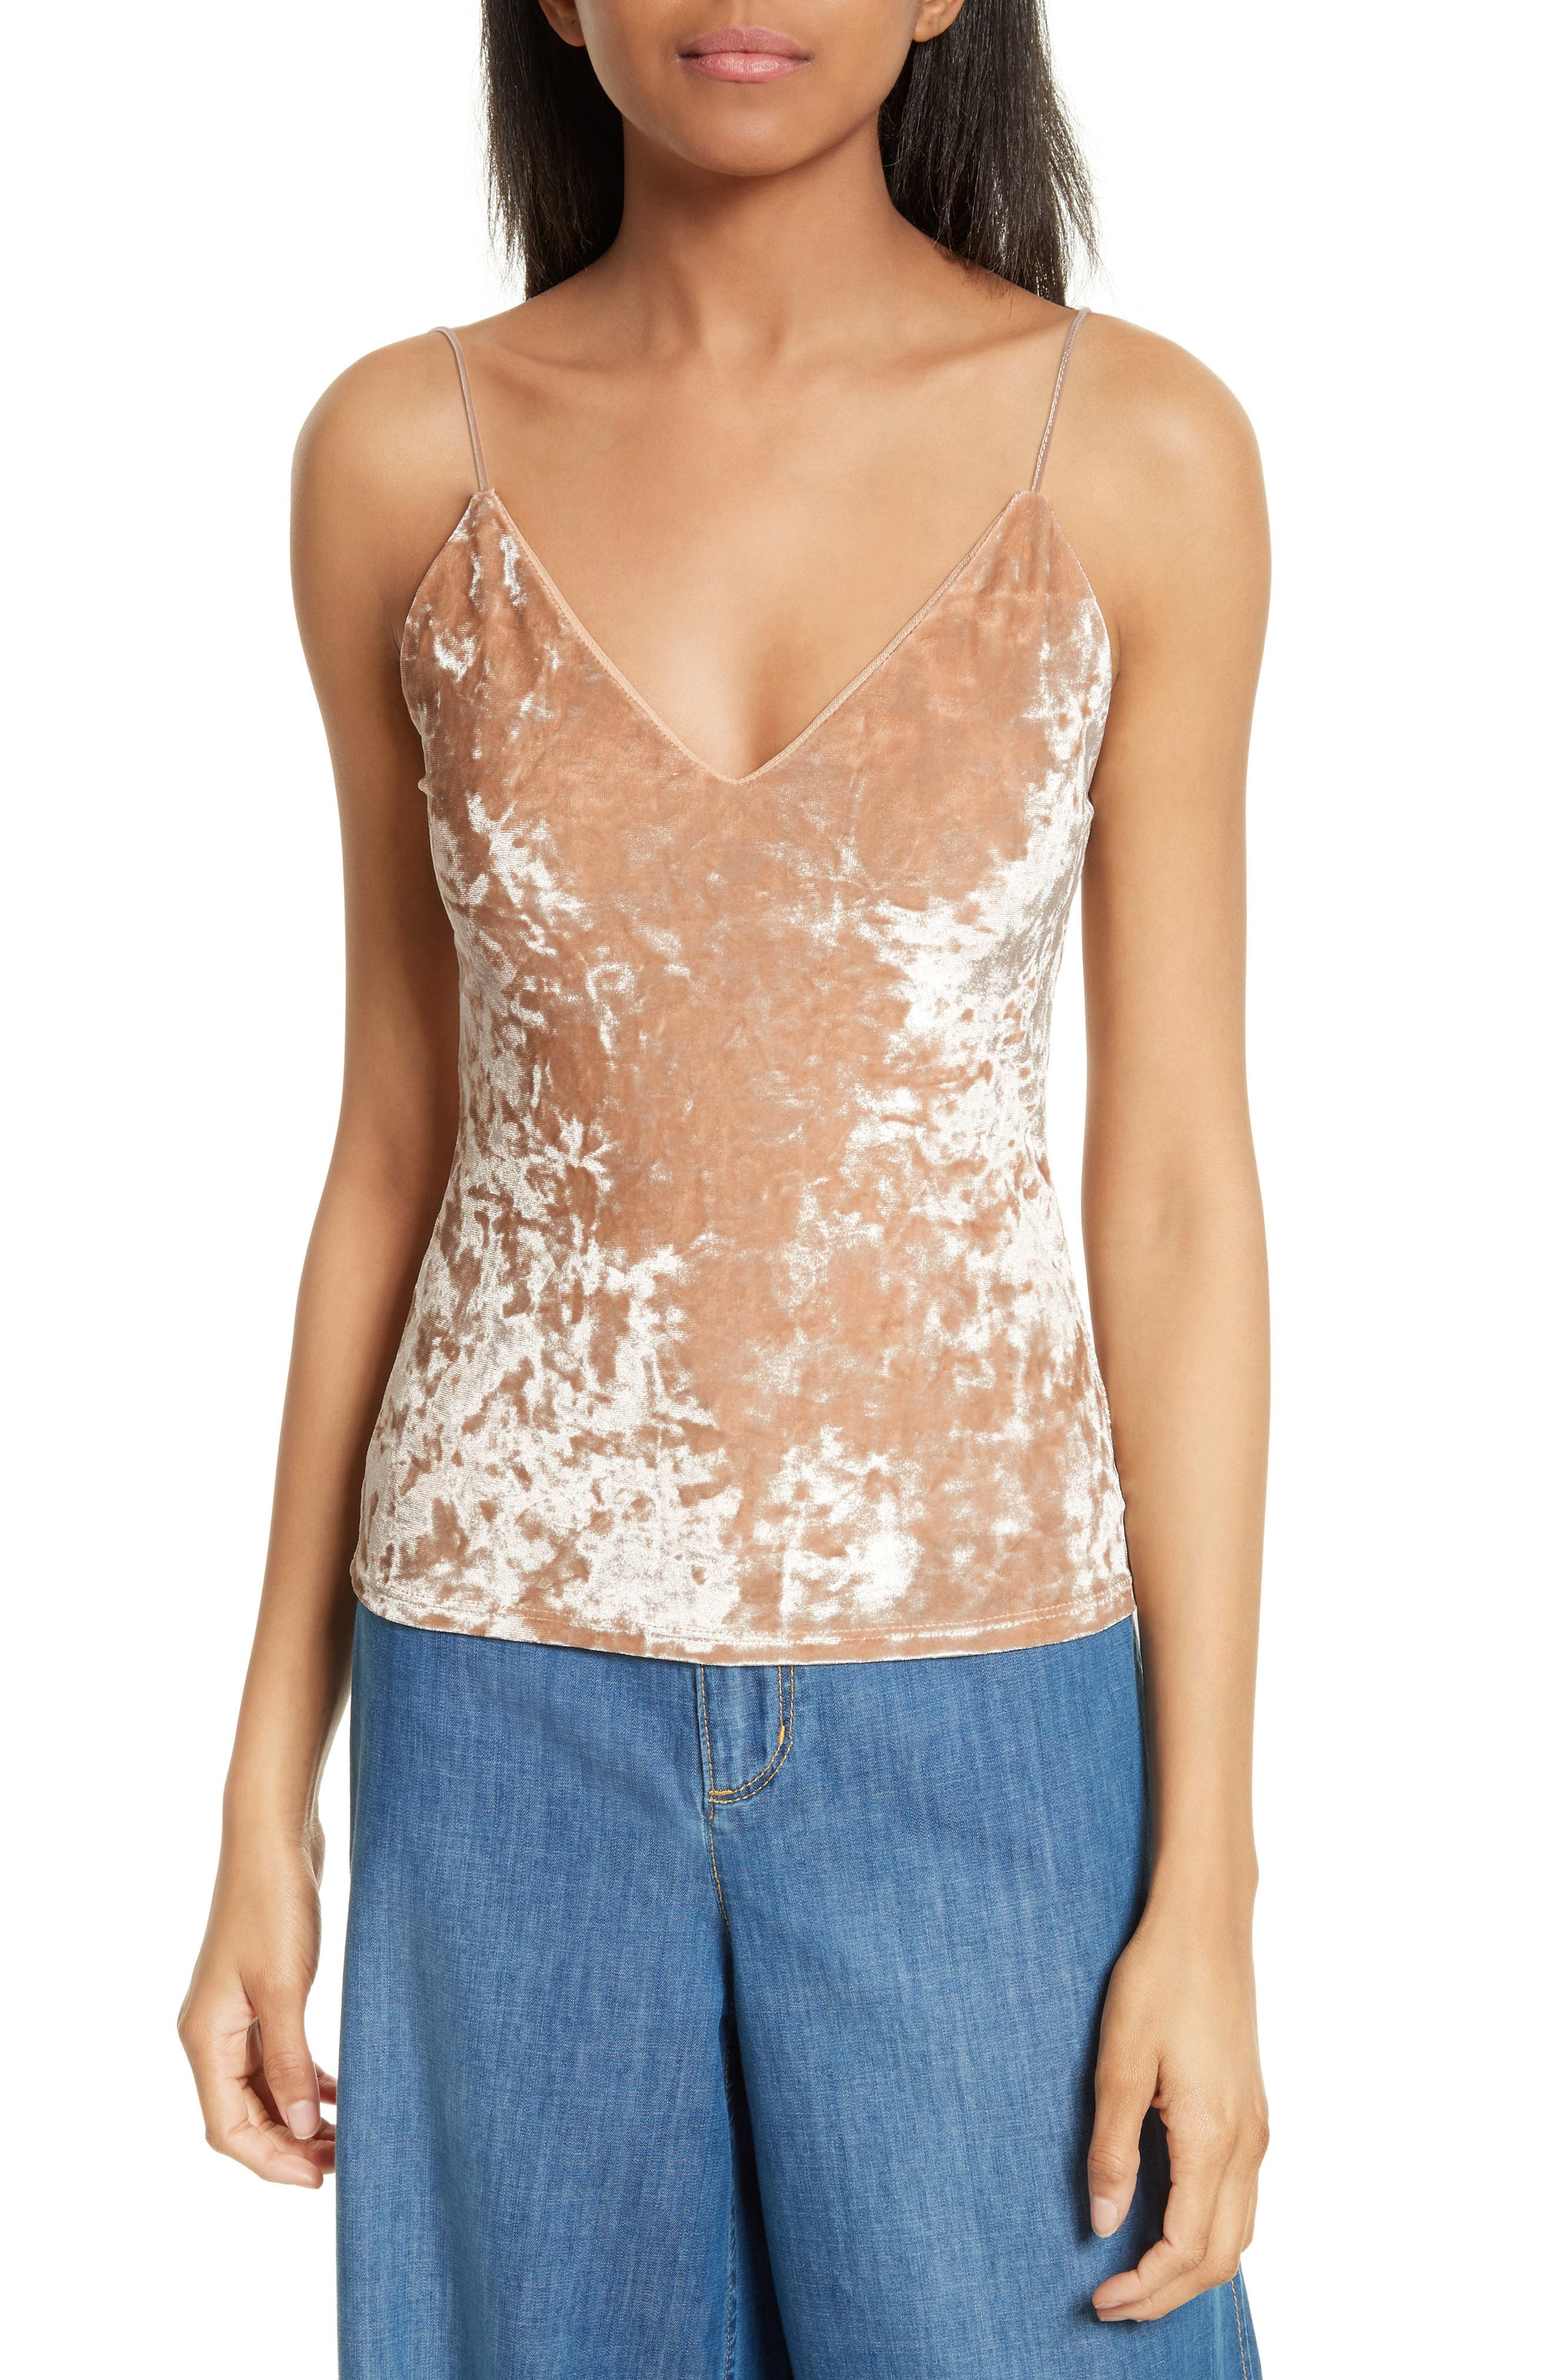 Delray Crushed Velvet Camisole,                             Main thumbnail 1, color,                             251